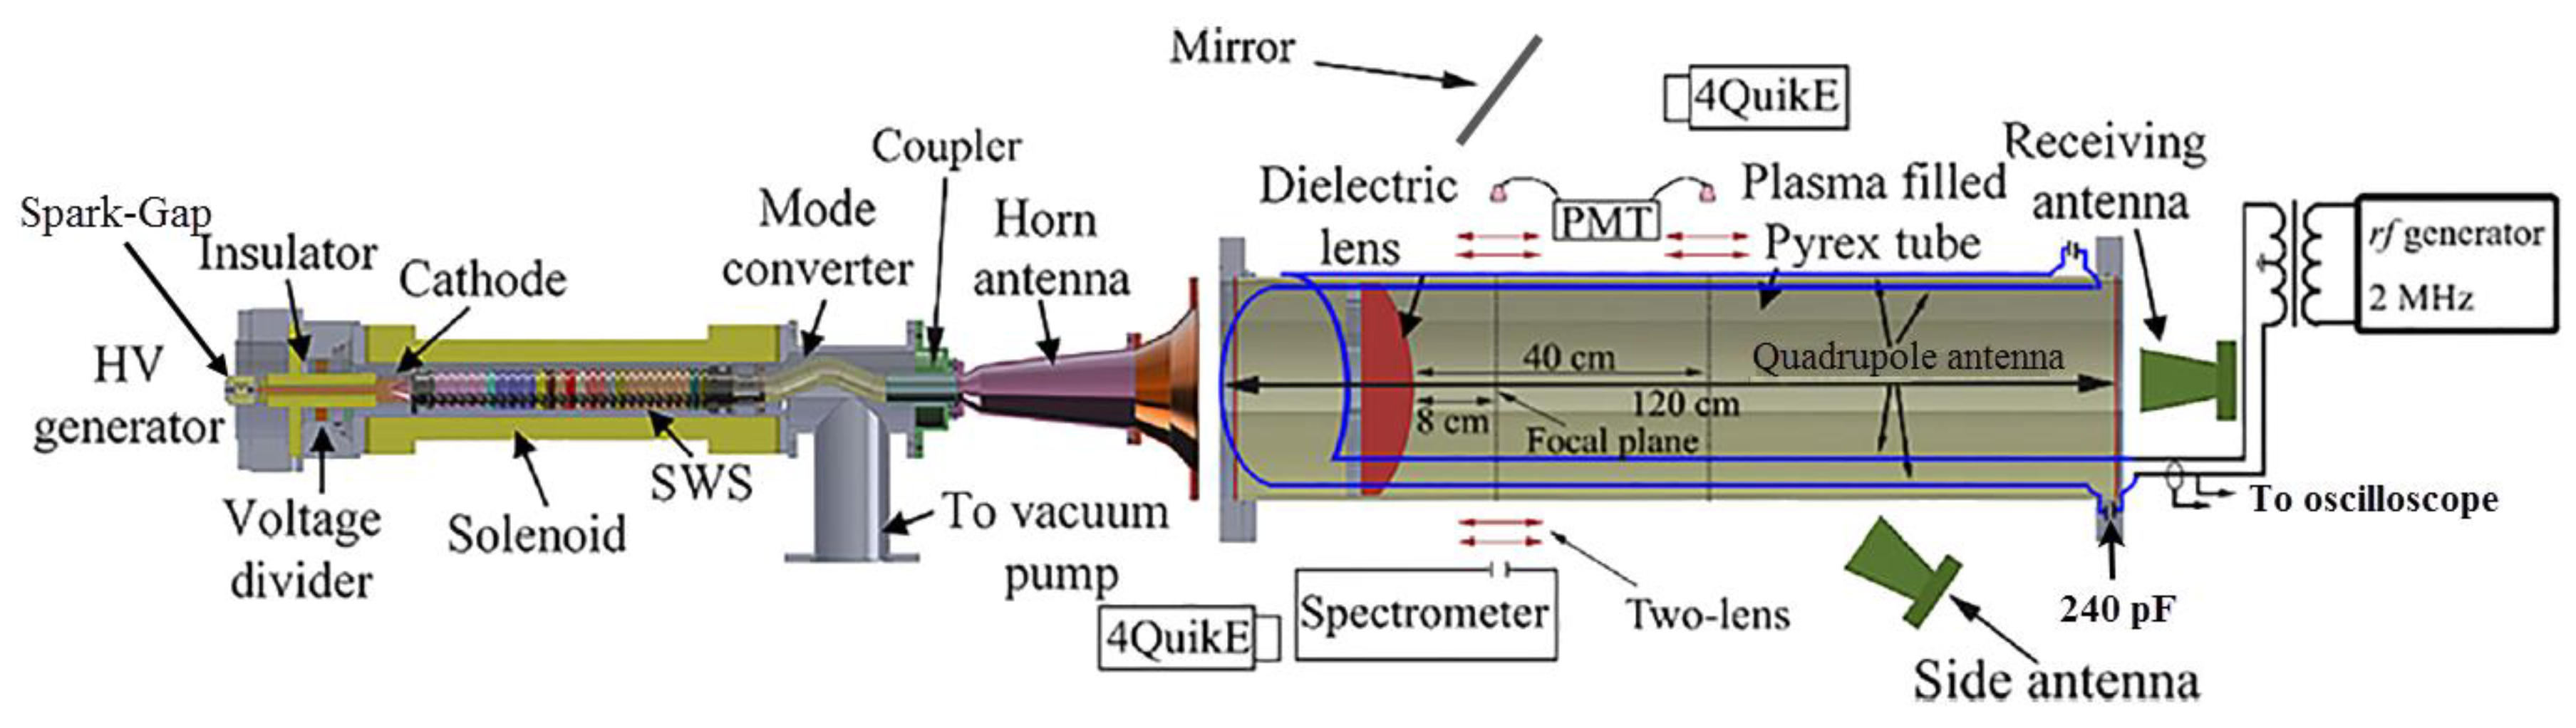 Plasma | Free Full-Text | Experiments Designed to Study the